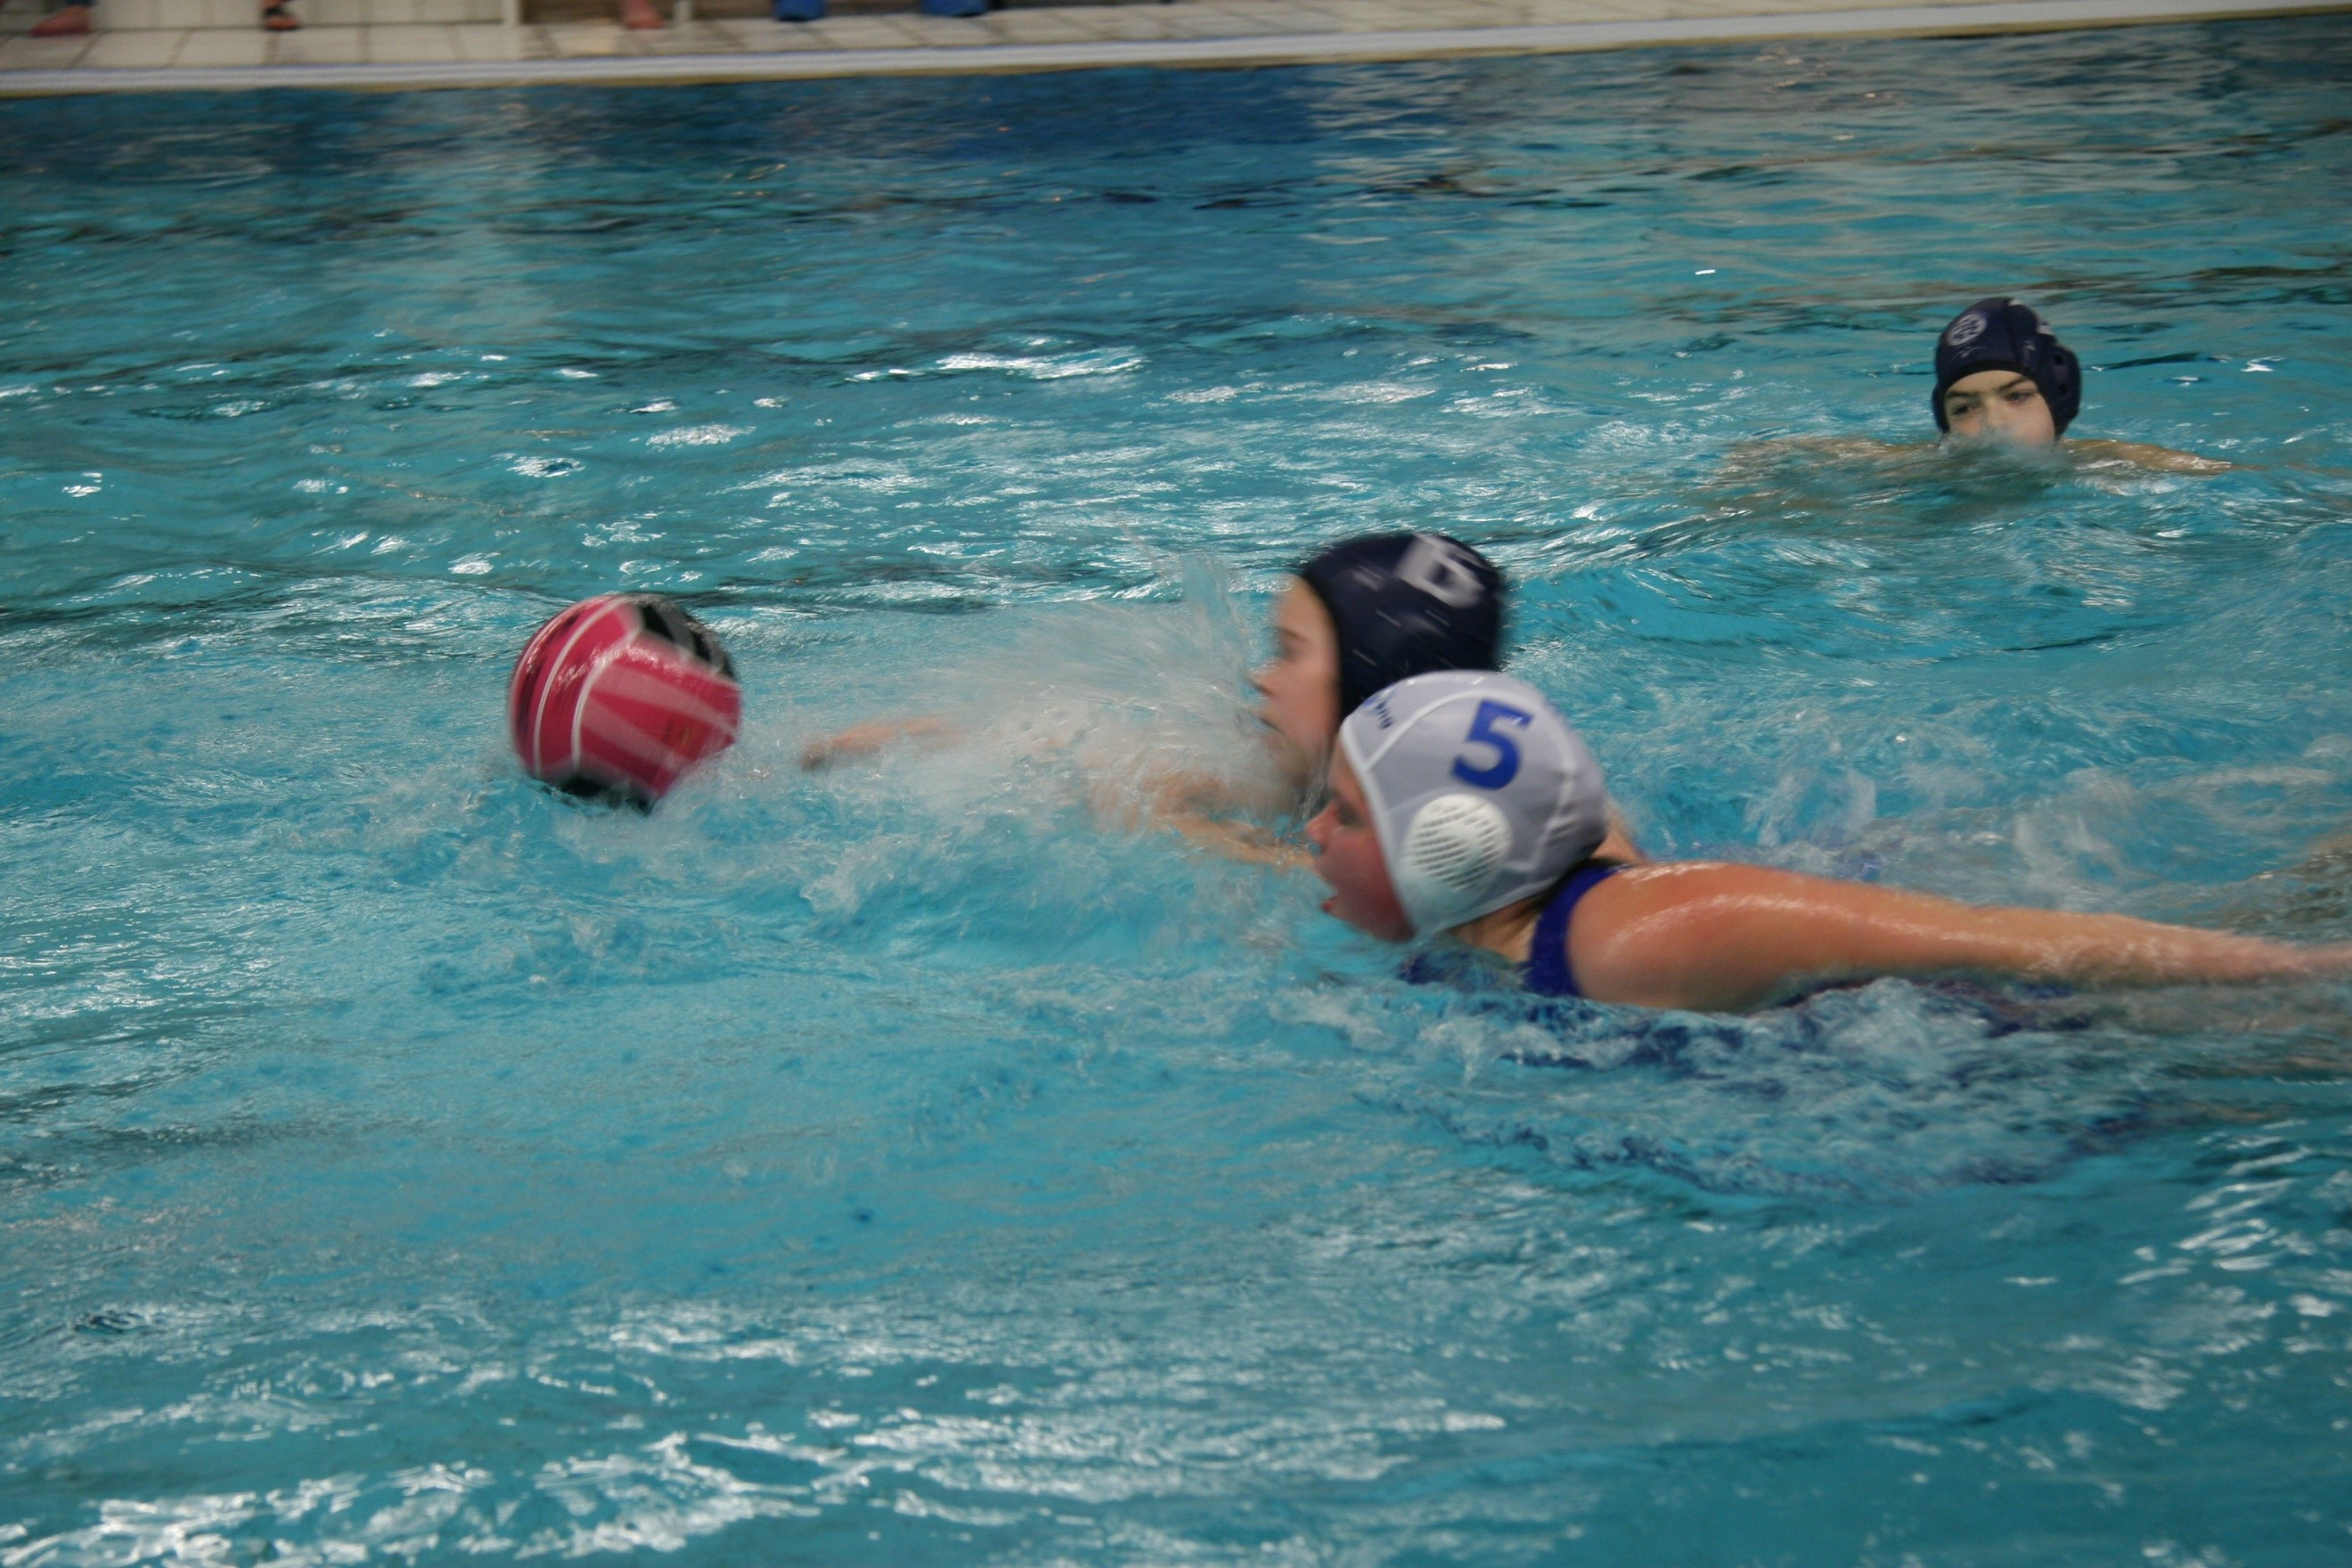 https://www.zvdespreng.nl/wp-content/uploads/2016/11/water-polo.jpg